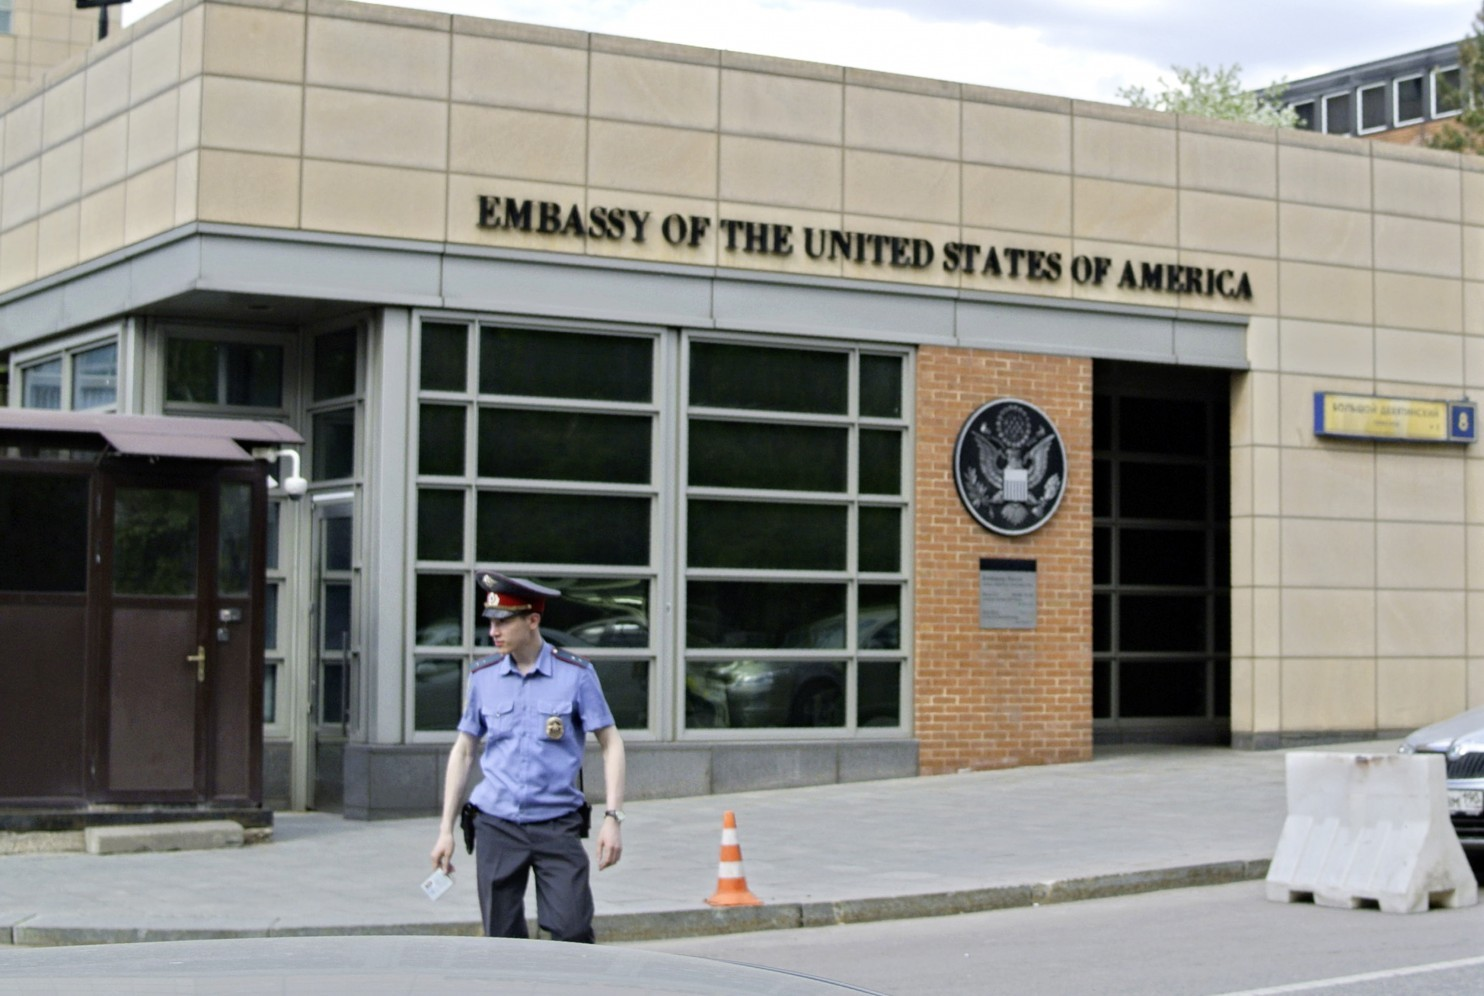 A Russian policeman stands in front of an entrance of the U.S. Embassy in Moscow in 2013. (Ivan Sekretarev/Associated Press)